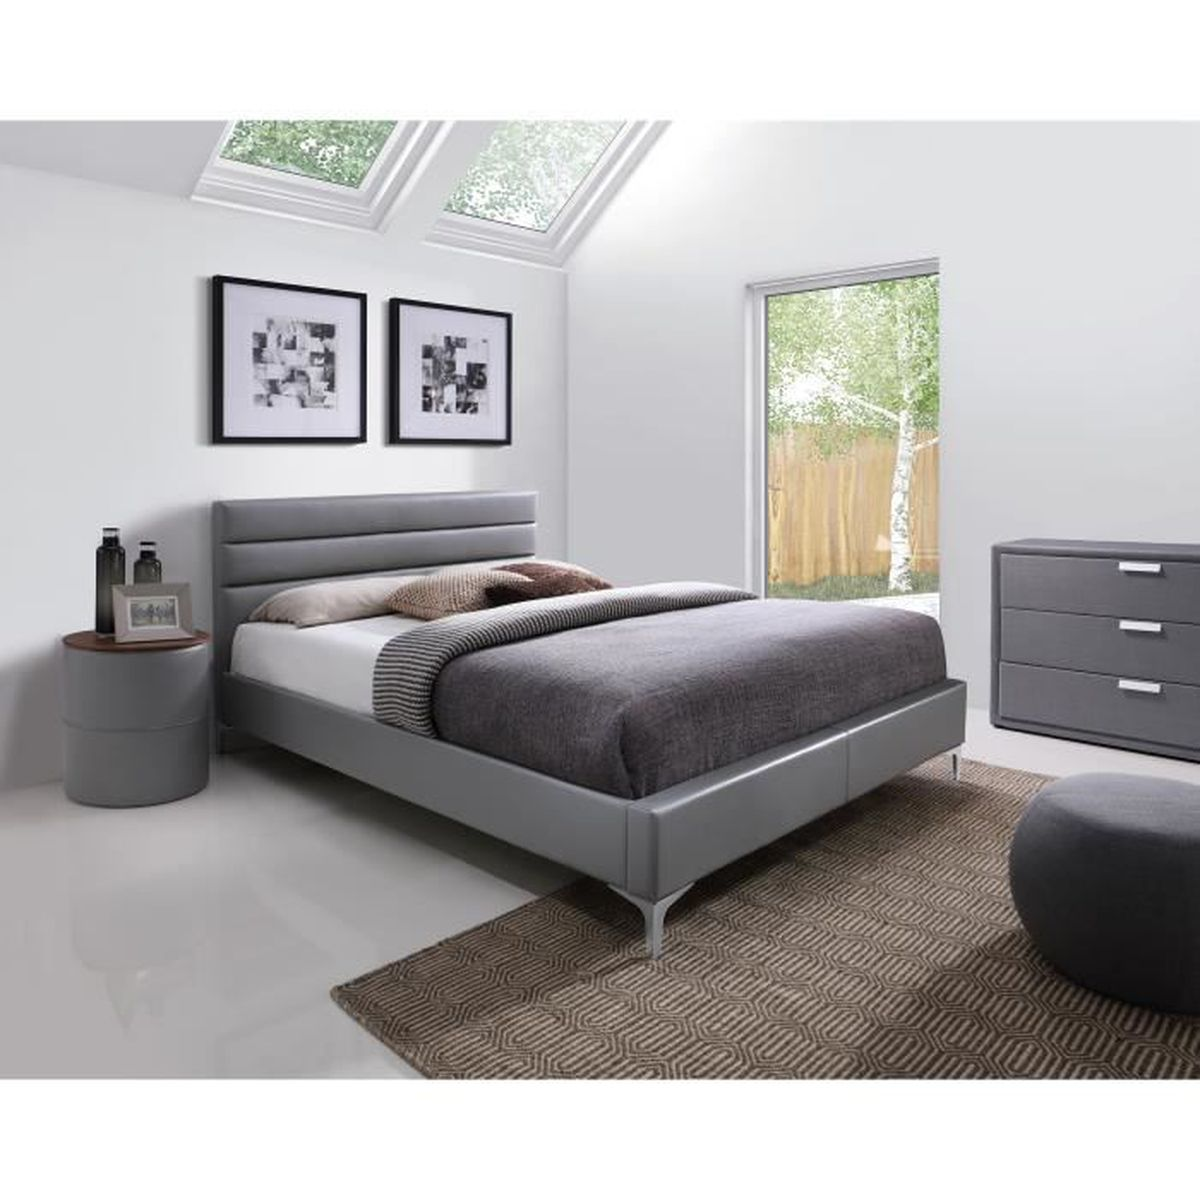 Price factory lit adulte design gris thomas 160x200 cm - Chambre adulte cdiscount ...